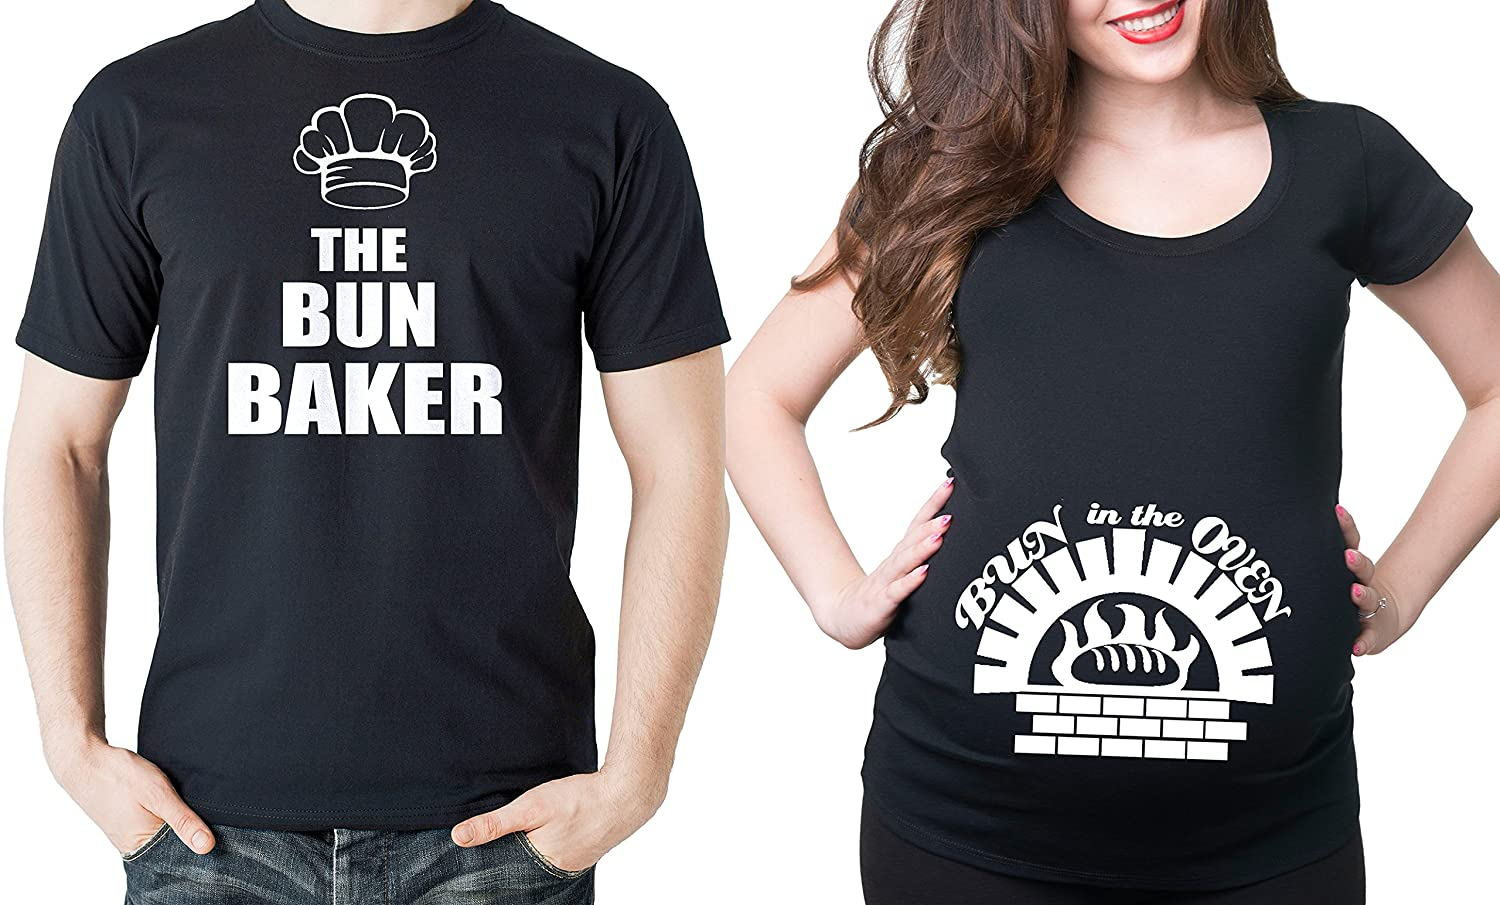 Bun Baker Couple Maternity Tee Shirt Bun in The Oven Dad and mom Maternity Couple New Baby Shower Shirts Pregnancy T-Shirt